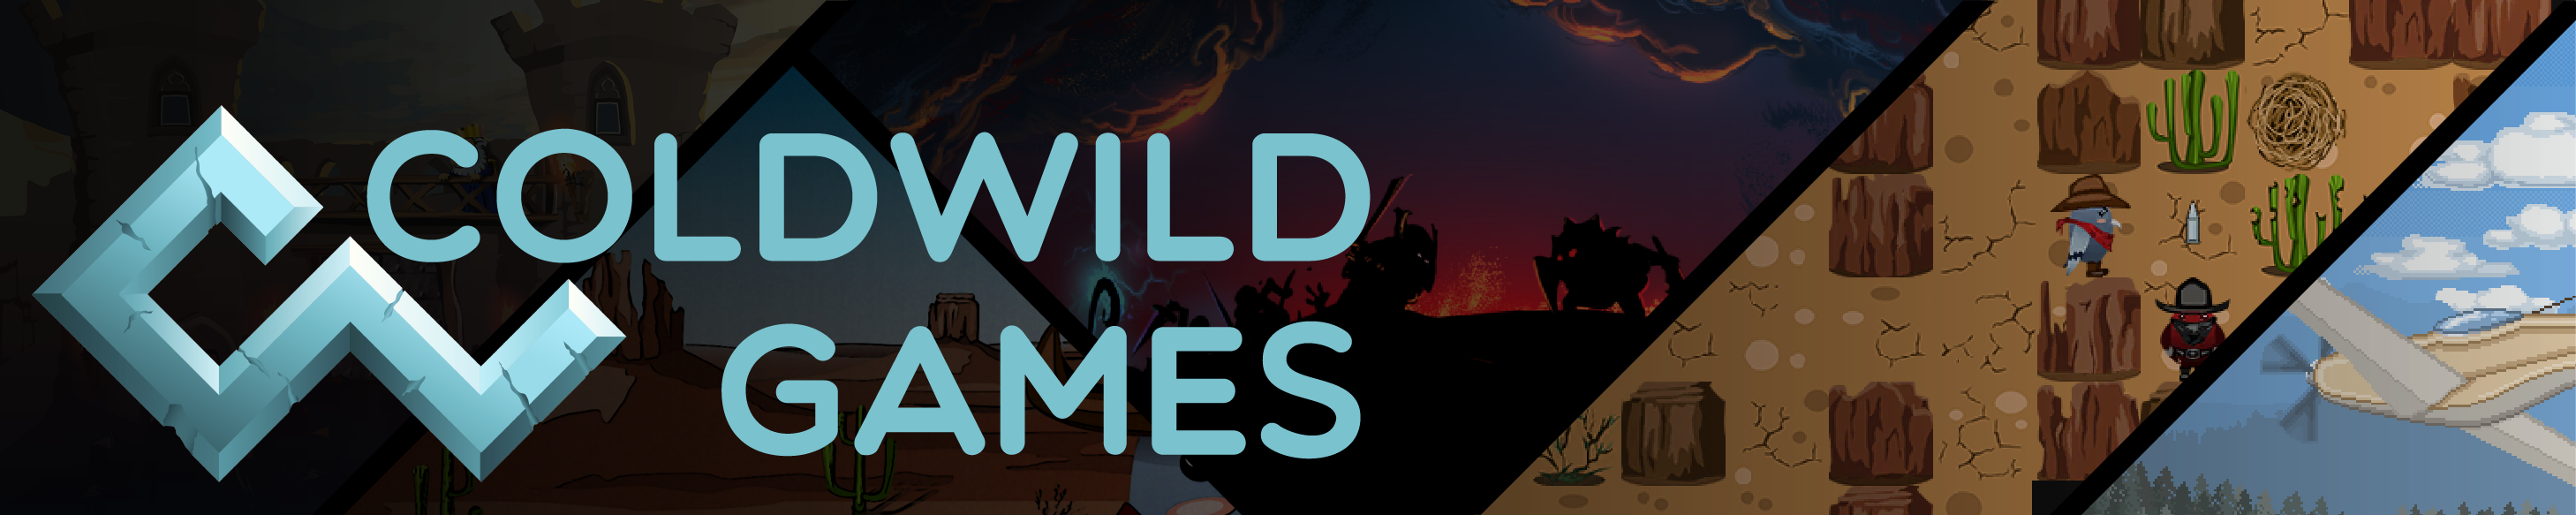 Coldwild Games